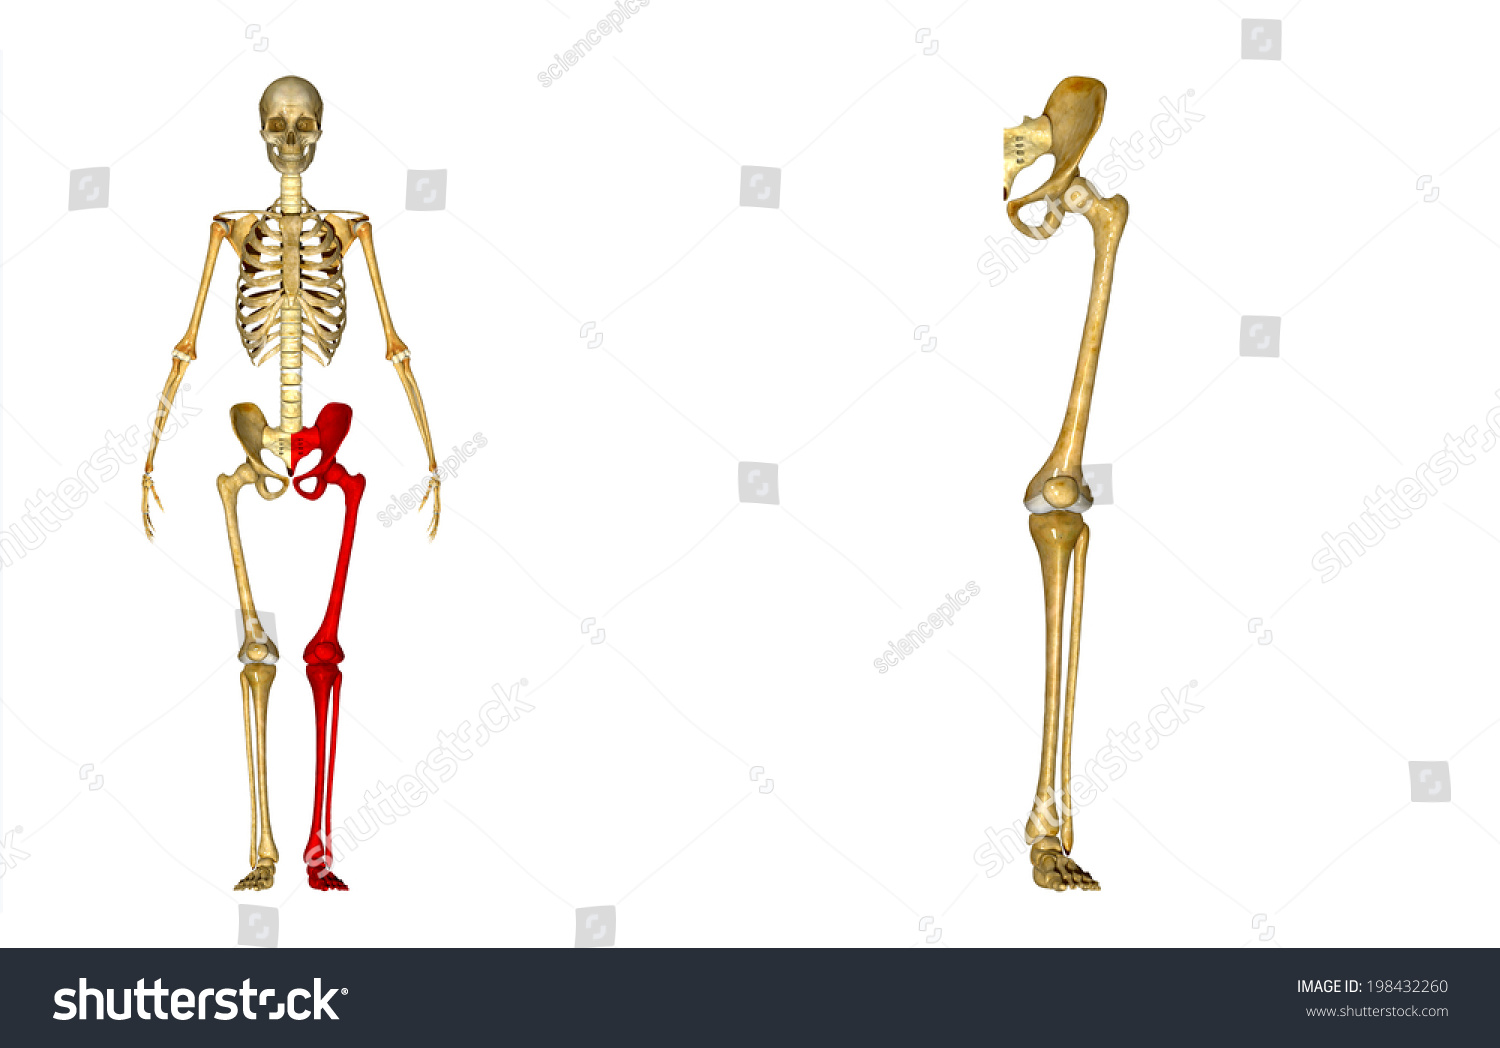 Skeleton Left Leg Stock Illustration 198432260 - Shutterstock